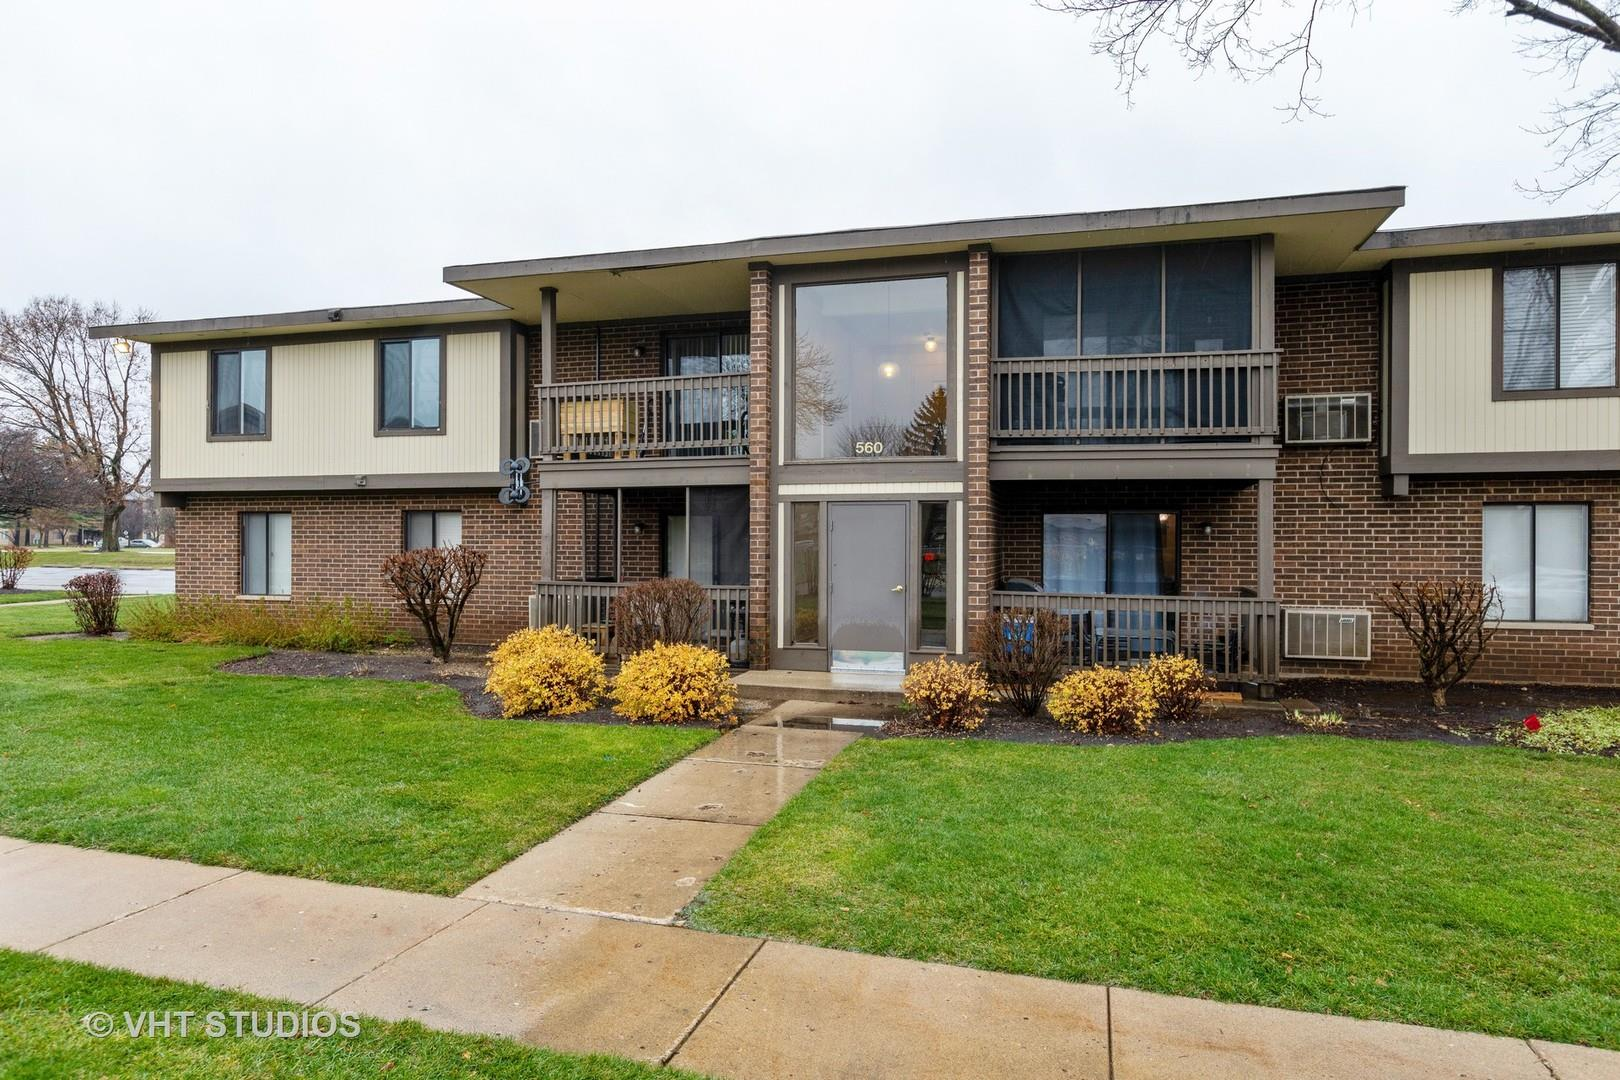 560 SOMERSET Lane #8, Crystal Lake, IL 60014 - #: 10940961